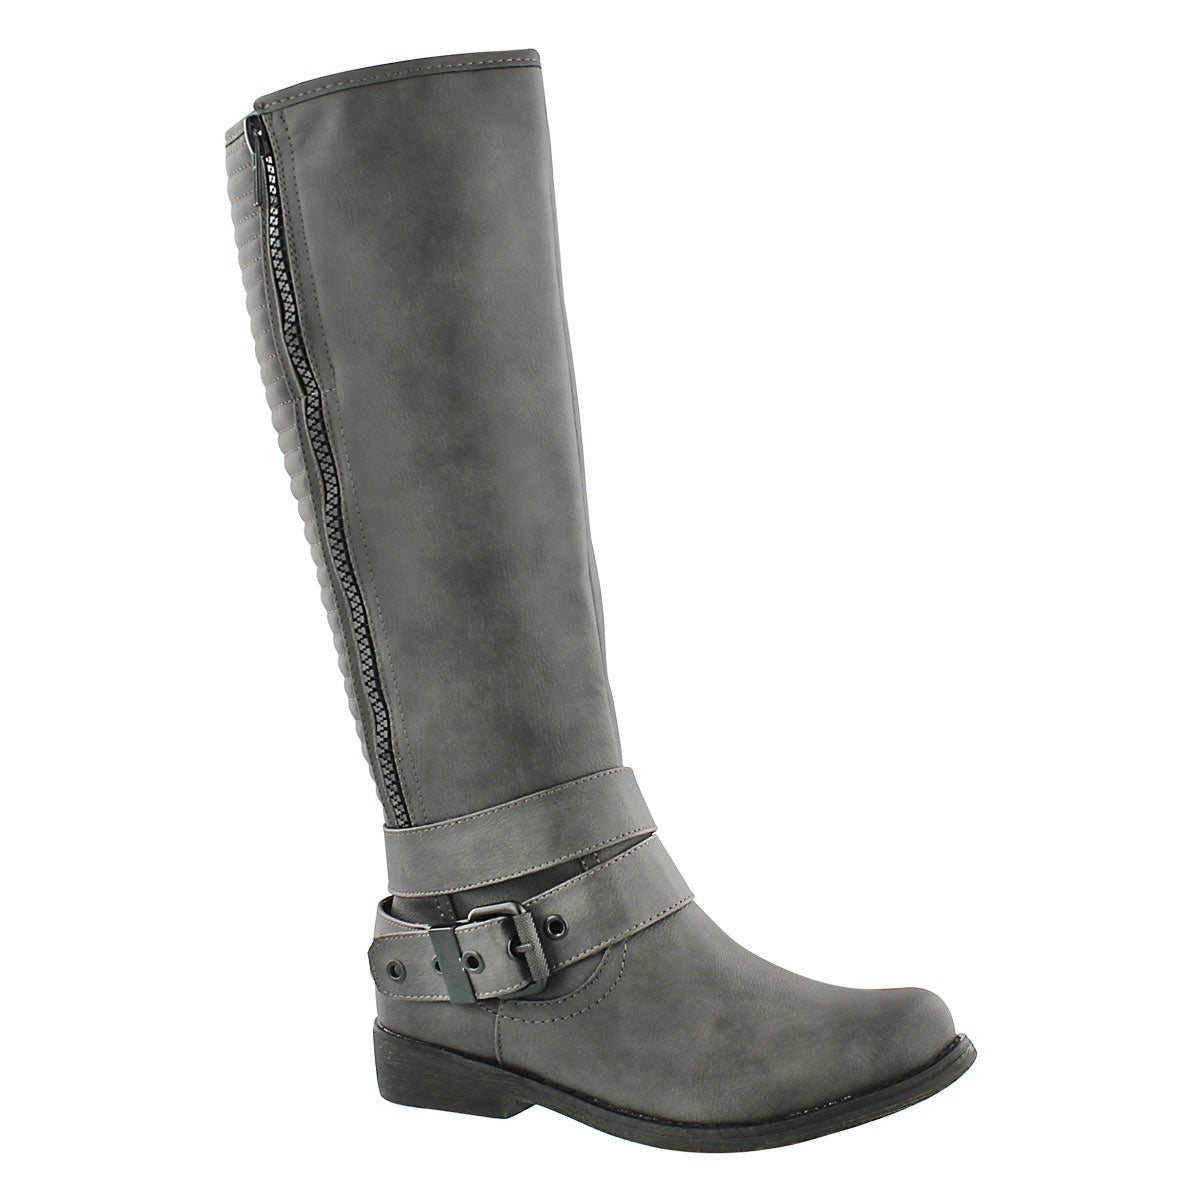 Women's BLAKELEY grey riding boots